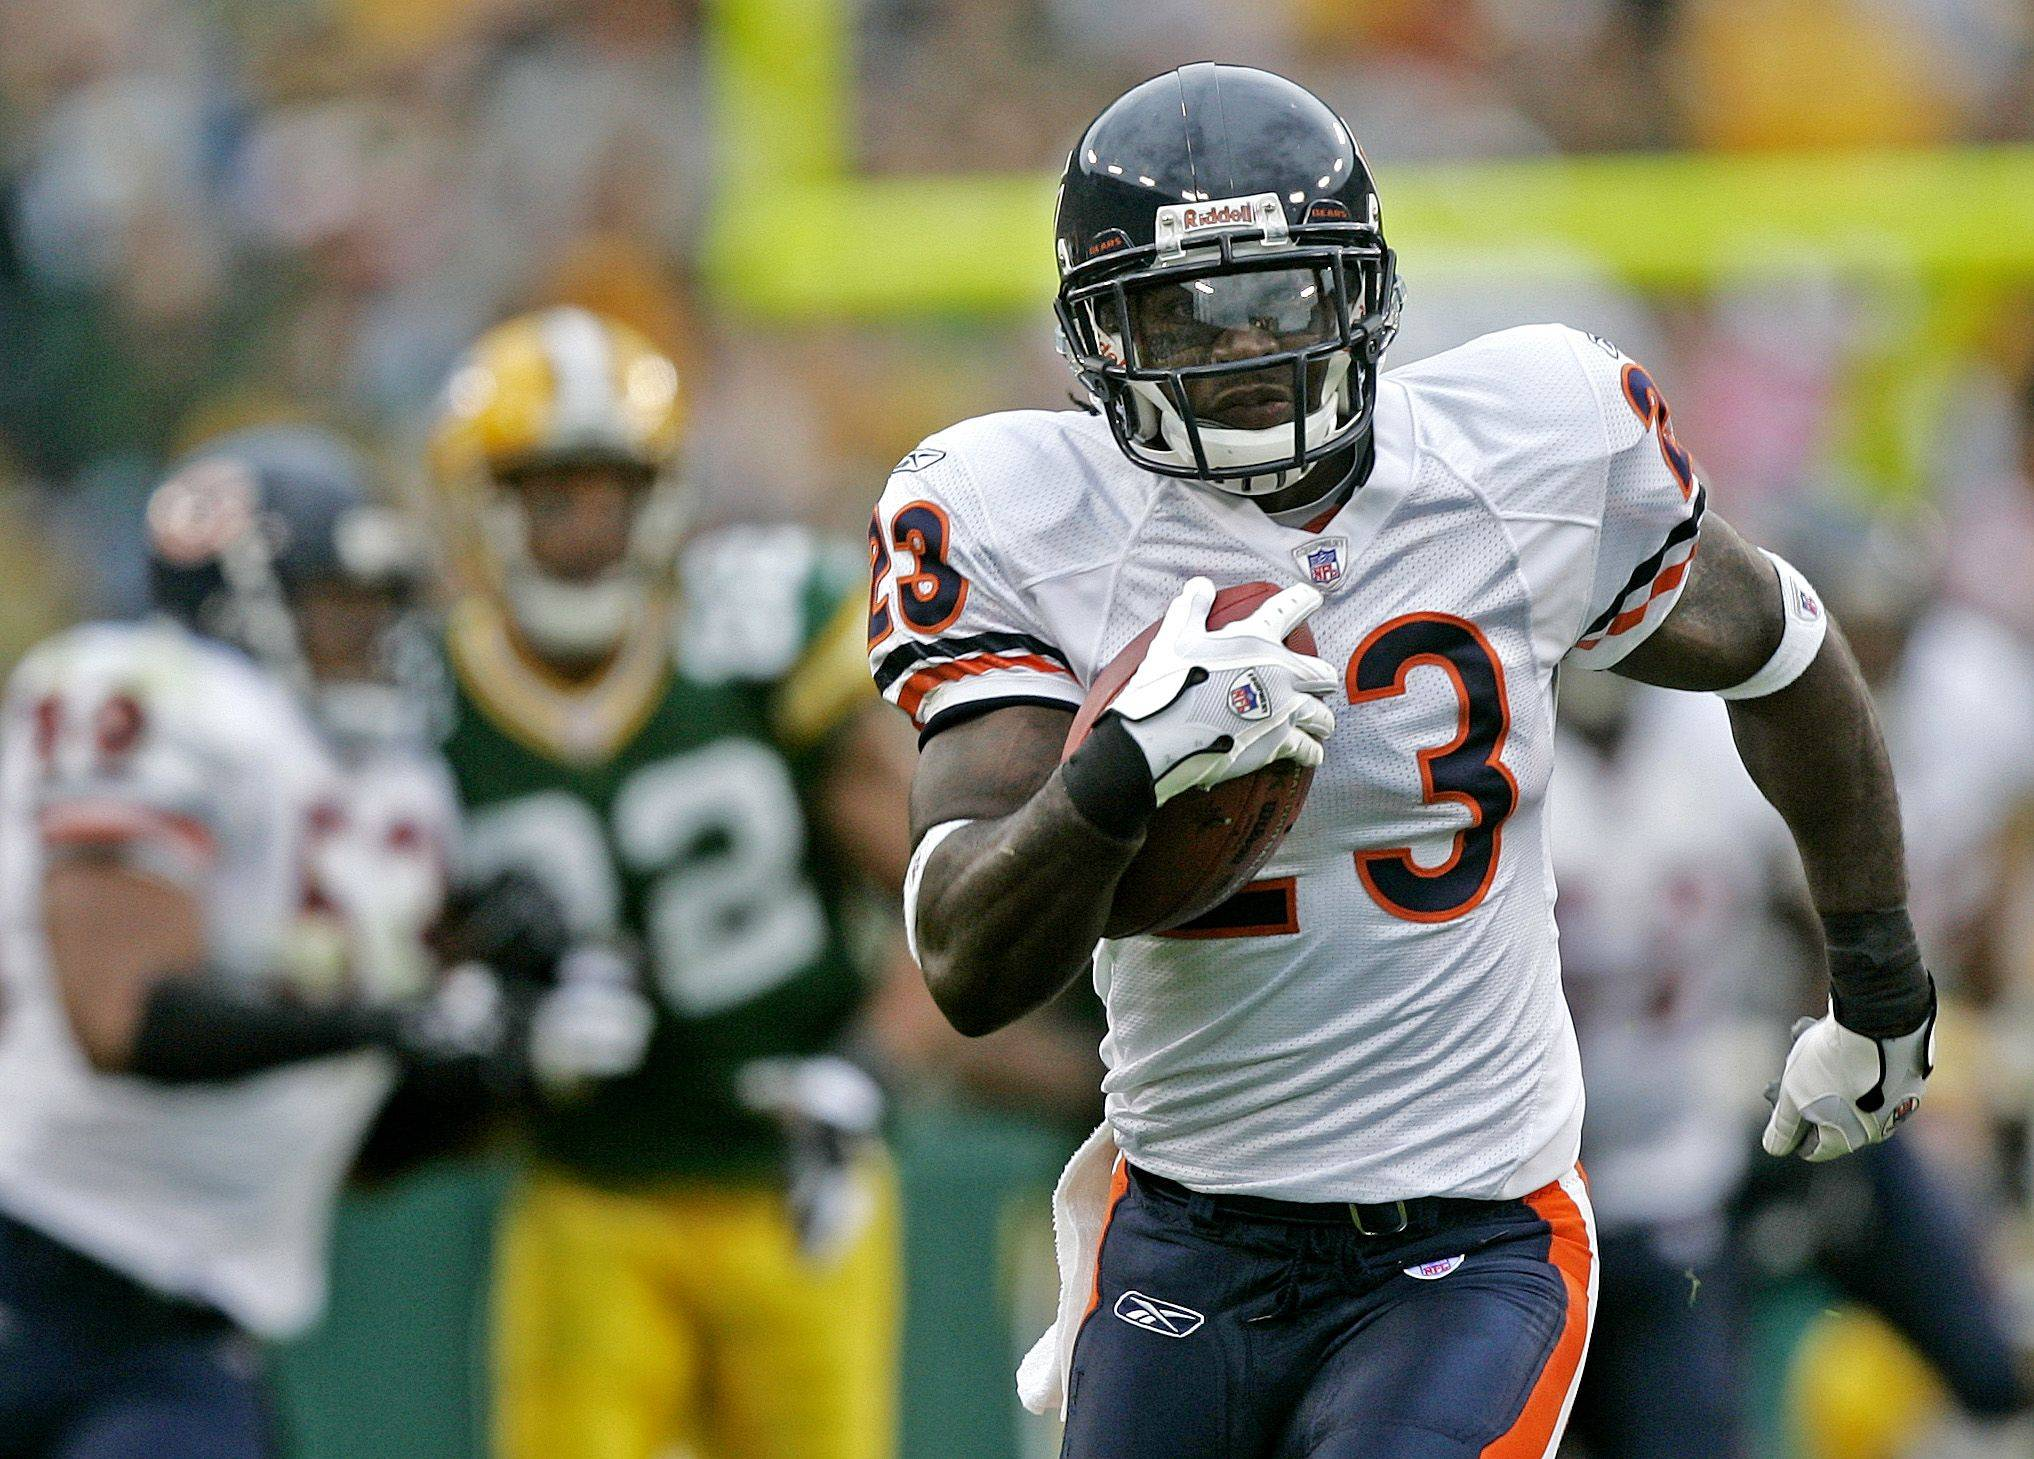 No. 1: Devin Hester breaks away for an 84-yard touchdown on a punt return against the Green Bay Packers on Sept. 10, 2006, in Green Bay.